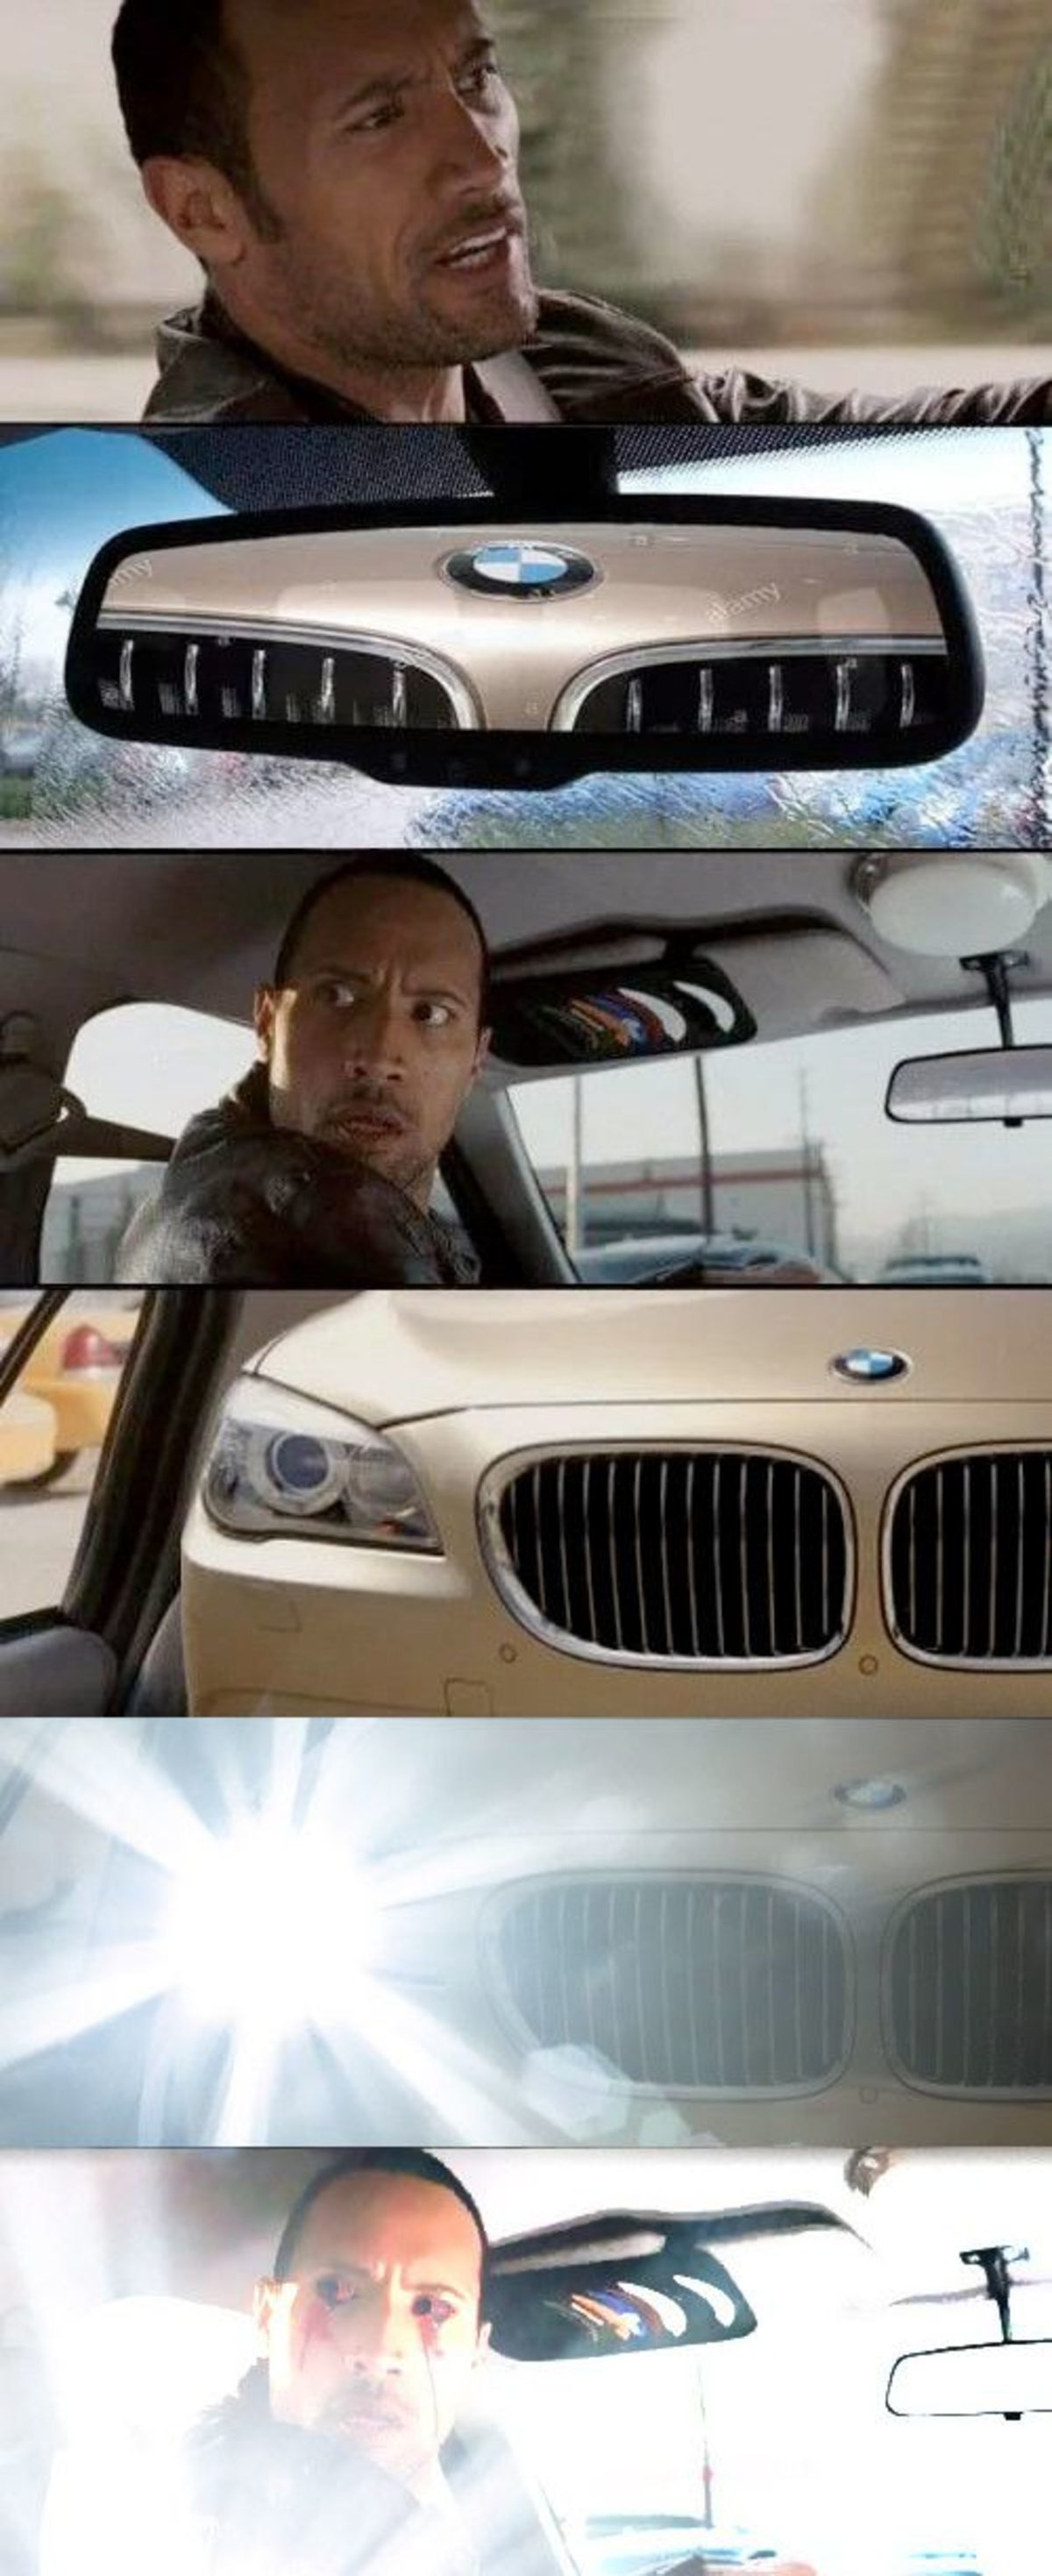 So basically, this is your average BMW driver